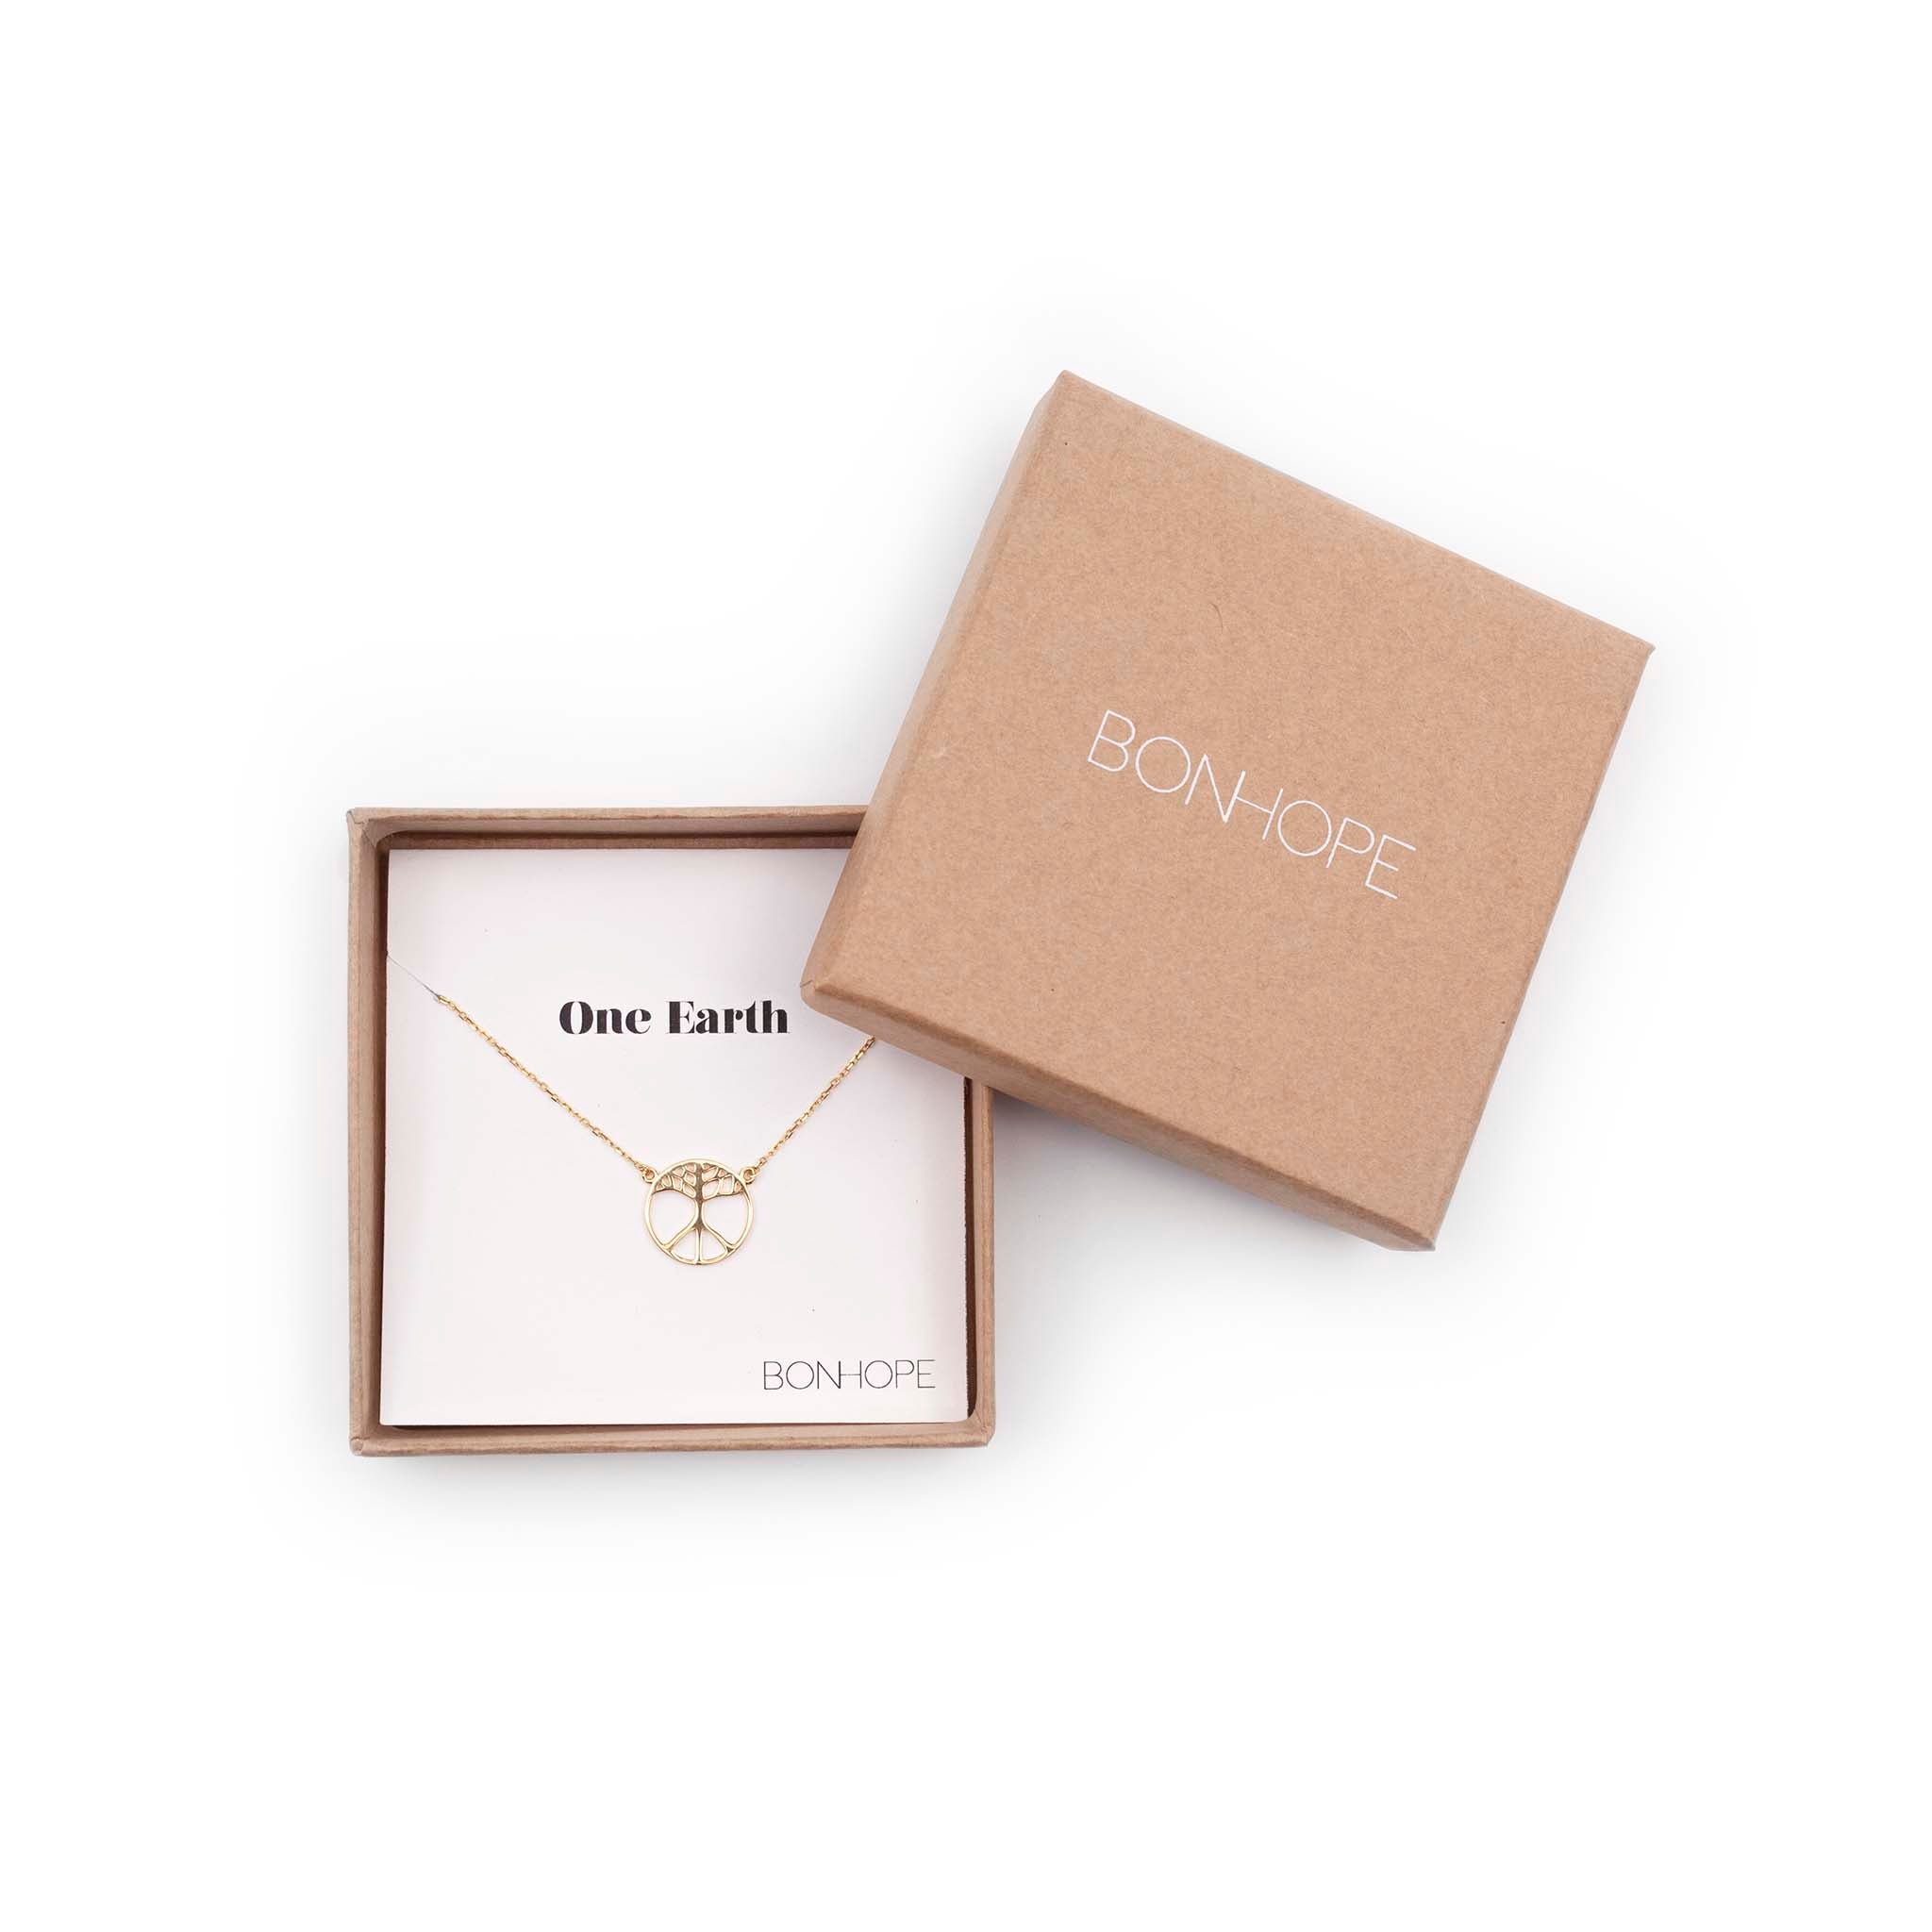 BON HOPE -One Earth Gold Necklace. The symbol is a merge of the tree of life and the classic peace symbol. 100% recycled silver jewelry ethically made in Bali.